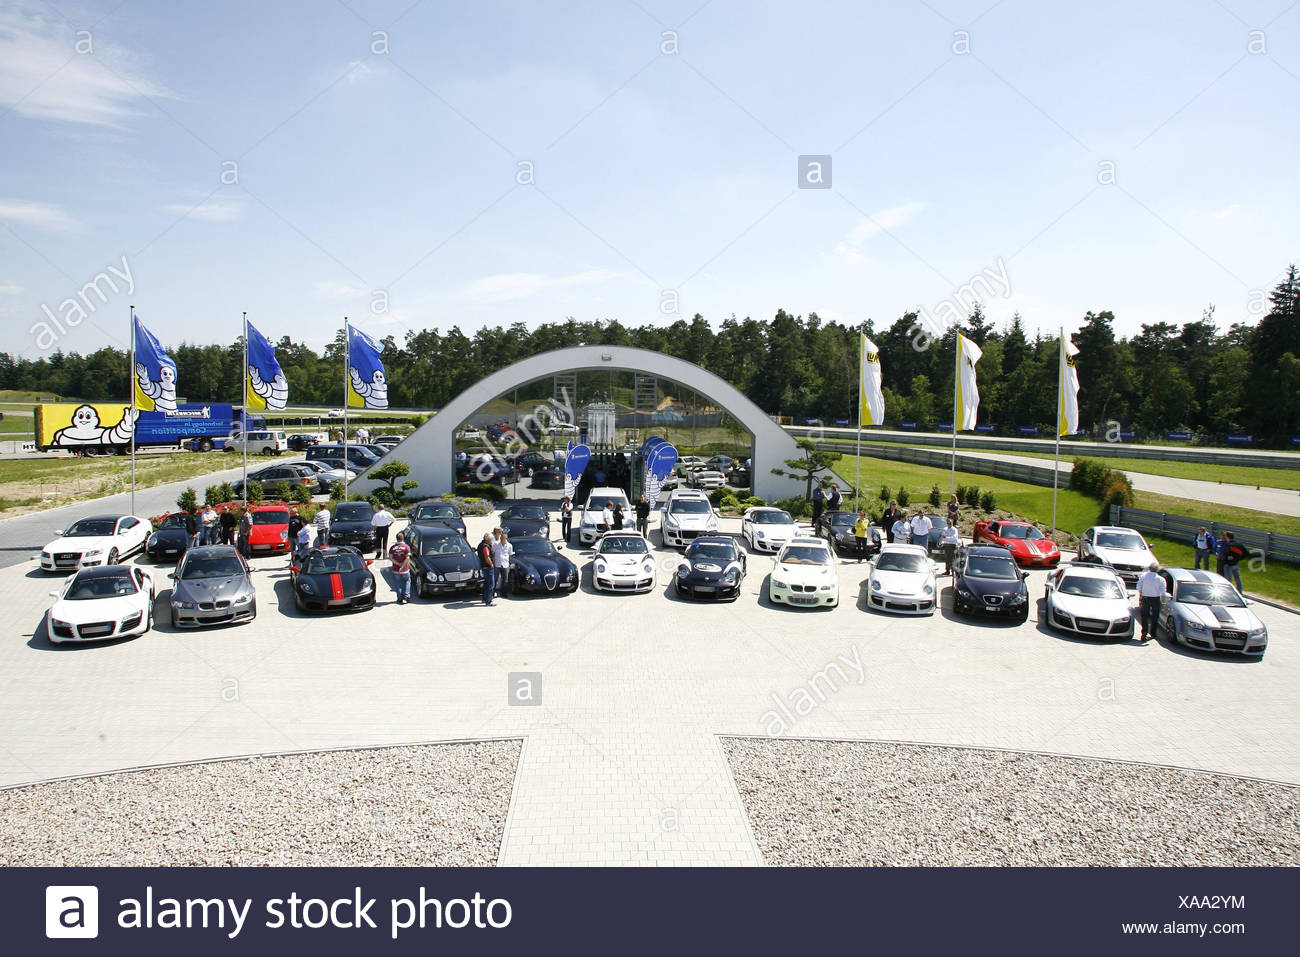 Parking lot, sports cars, mood cars, sports cars, meetings, cars, vehicles, sportily, HP, mood, luxury, expensive, - Stock Image